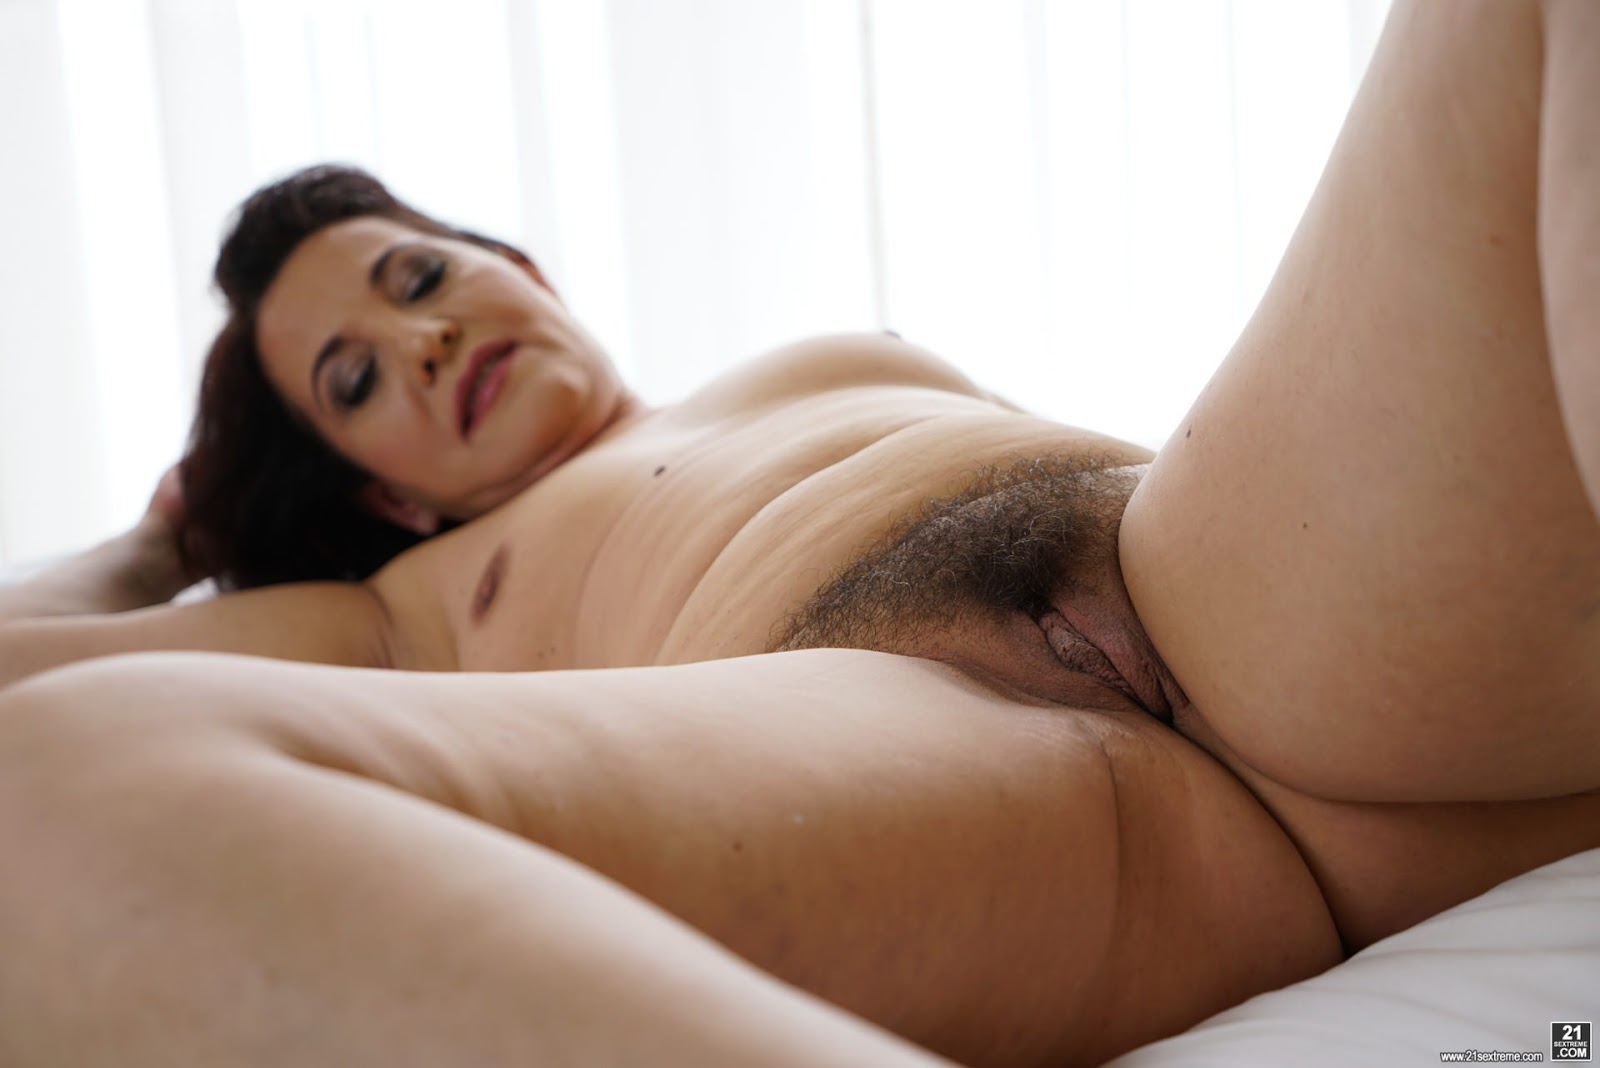 British milf clare cream strips off and enjoys her vibrator - 2 part 5